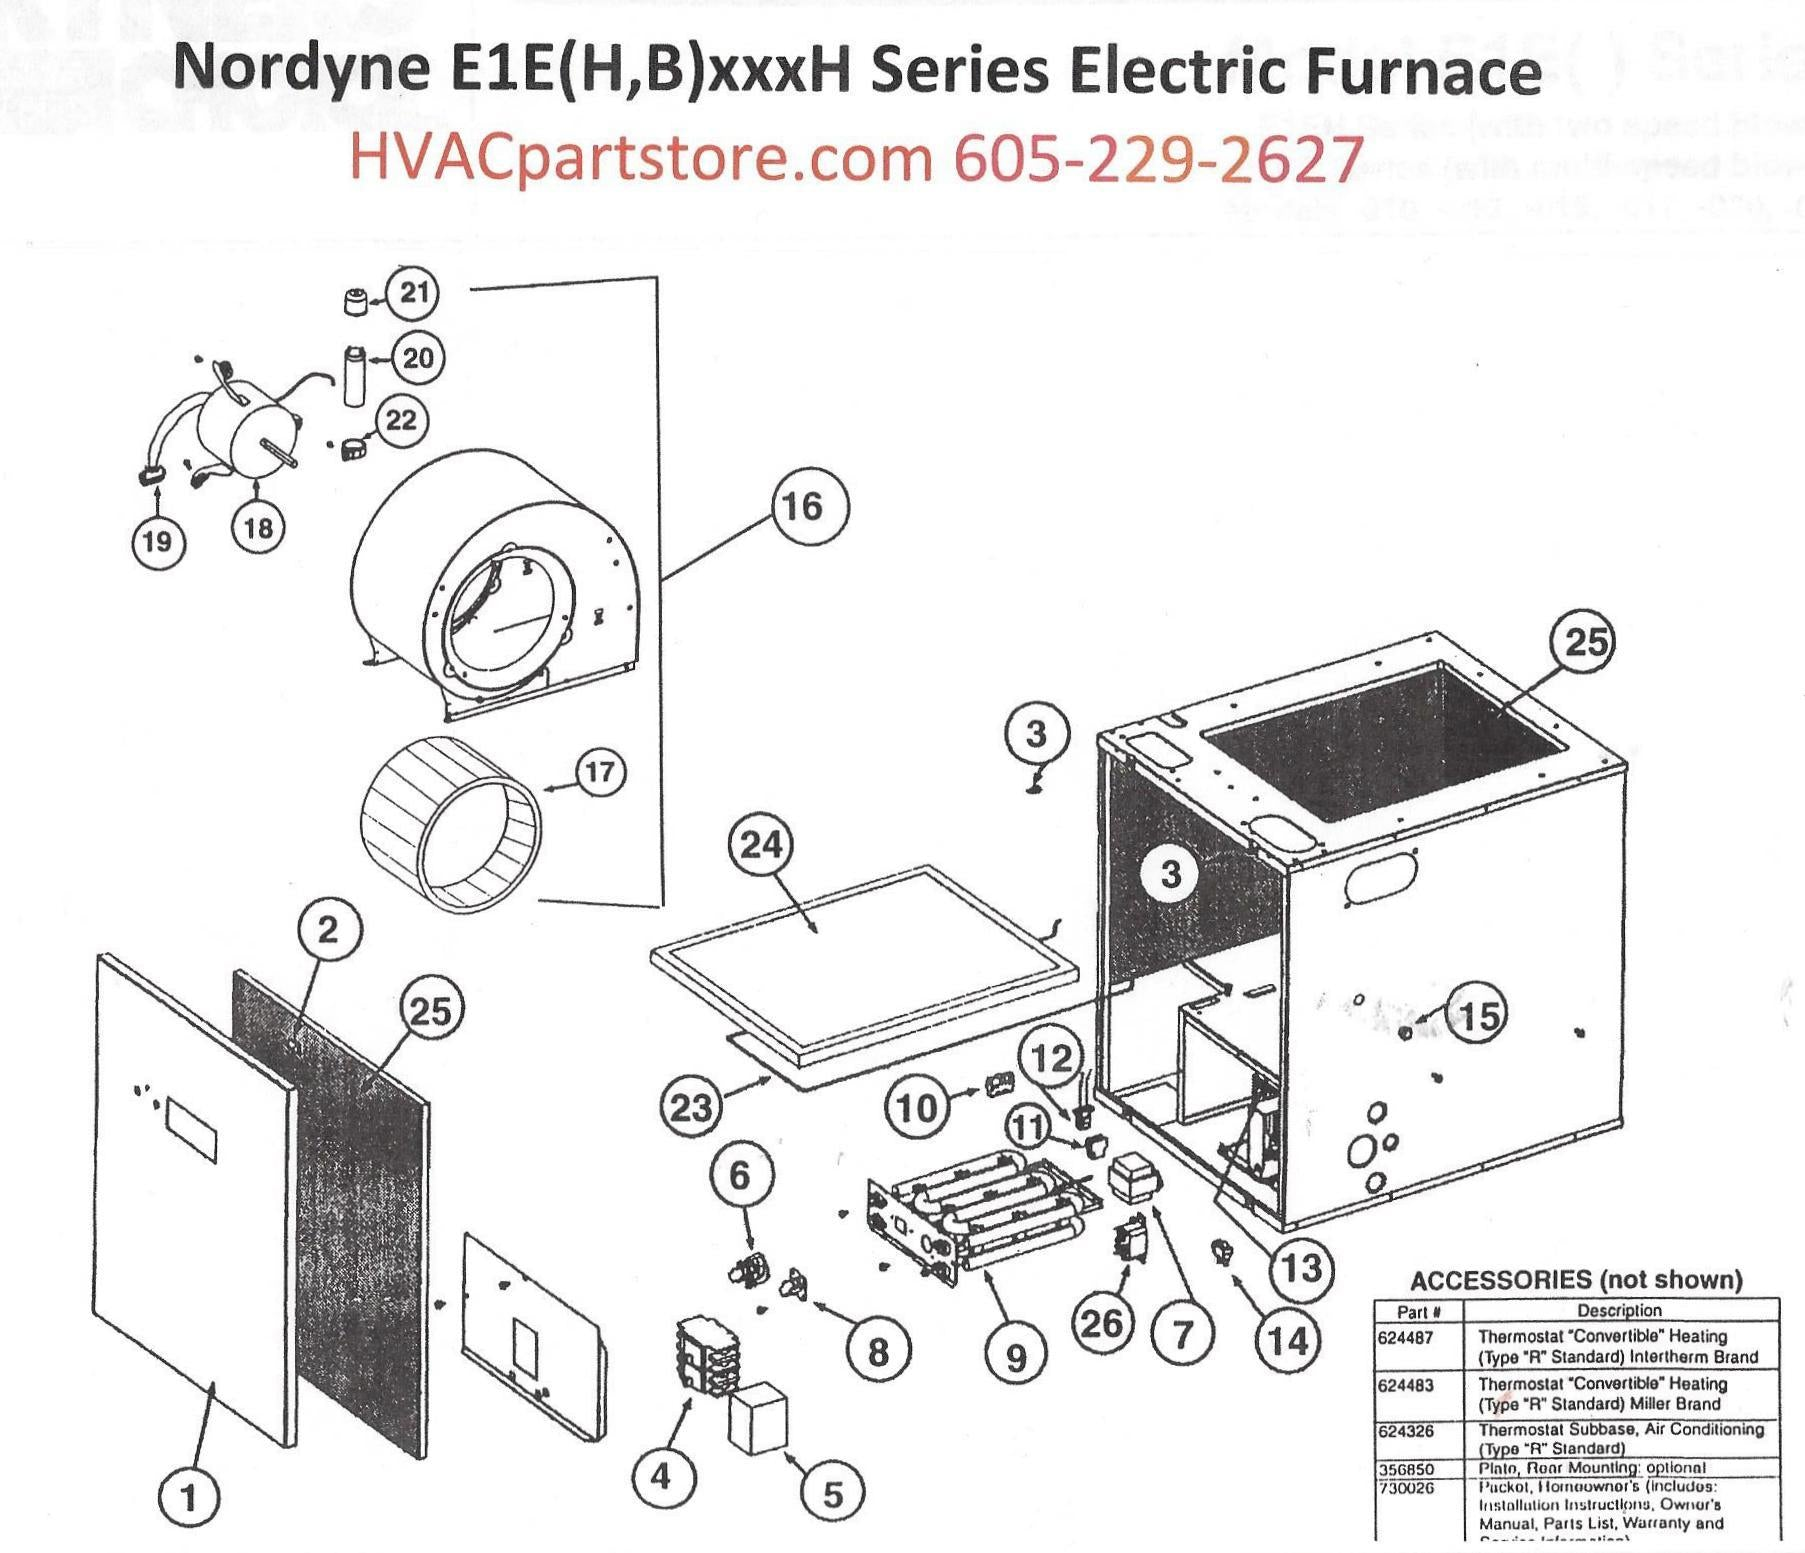 PartsDiagram_02a1912f dcdf 45a8 a9a4 80fe153be30a?14319775571429538179 e1eh017h nordyne electric furnace parts hvacpartstore e1eh 015ha wiring diagram at gsmportal.co